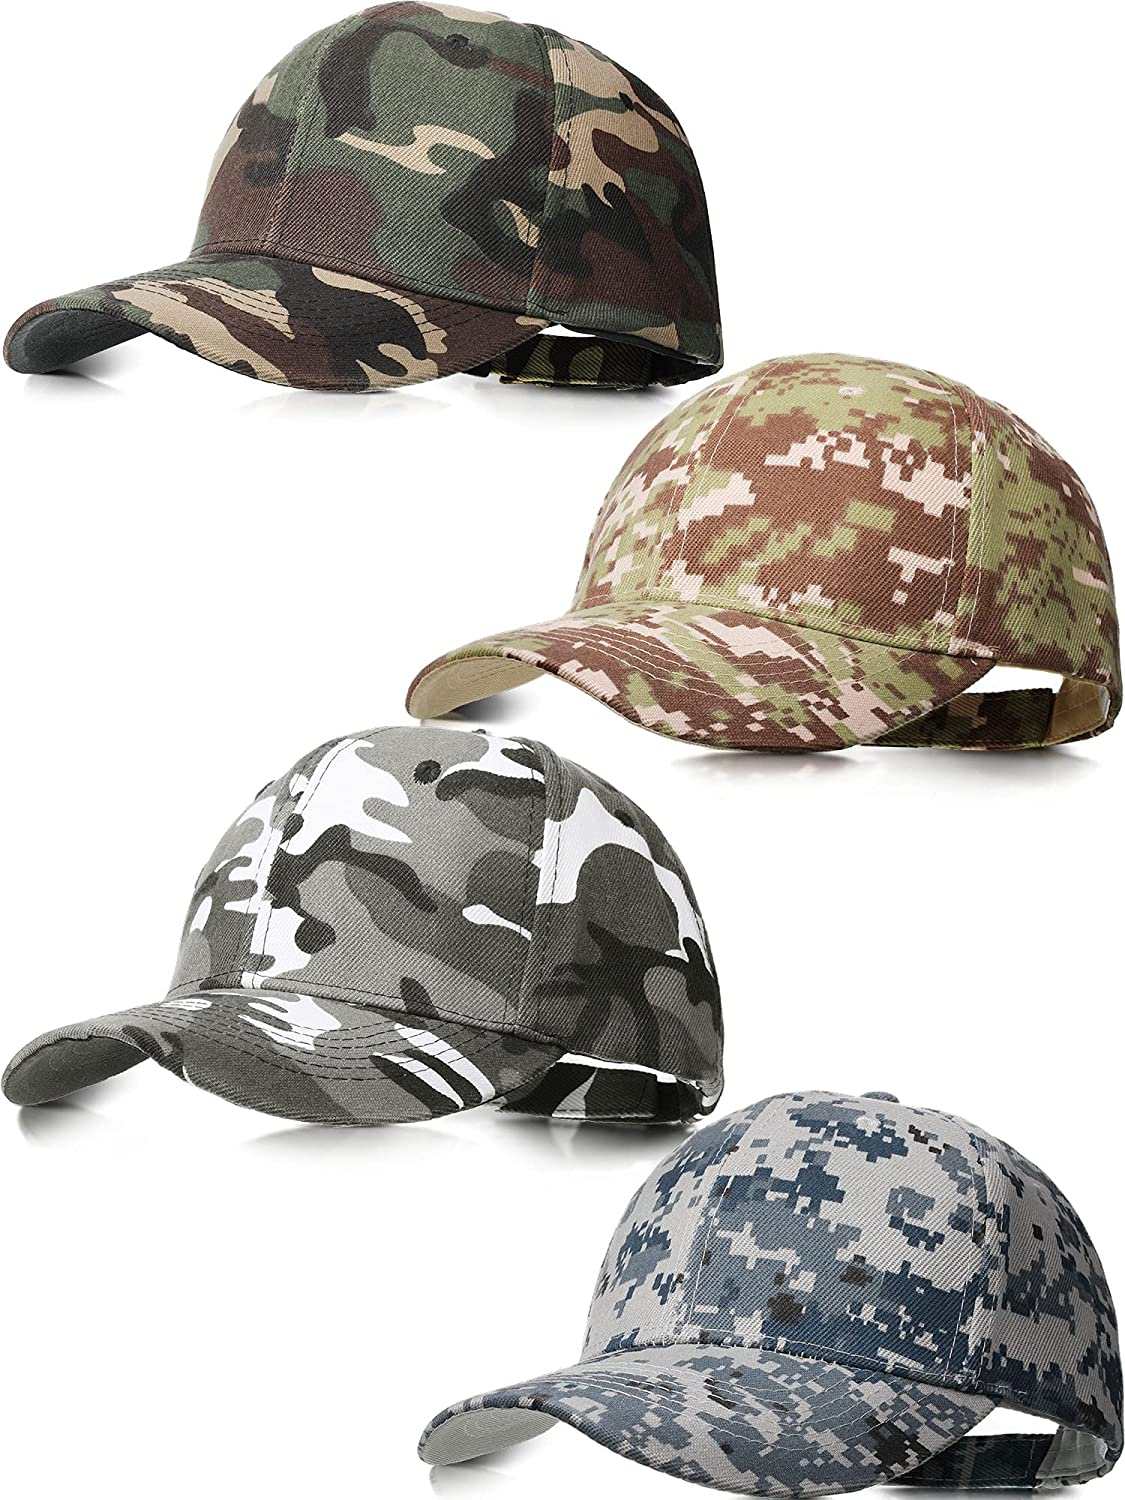 Geyoga 4 Pieces Men Camouflage Baseball Cap Army Military Camo Hat Camouflage Outdoor Sports Cap Camo Tactical Cap Hunting Fishing Hat for Men Women